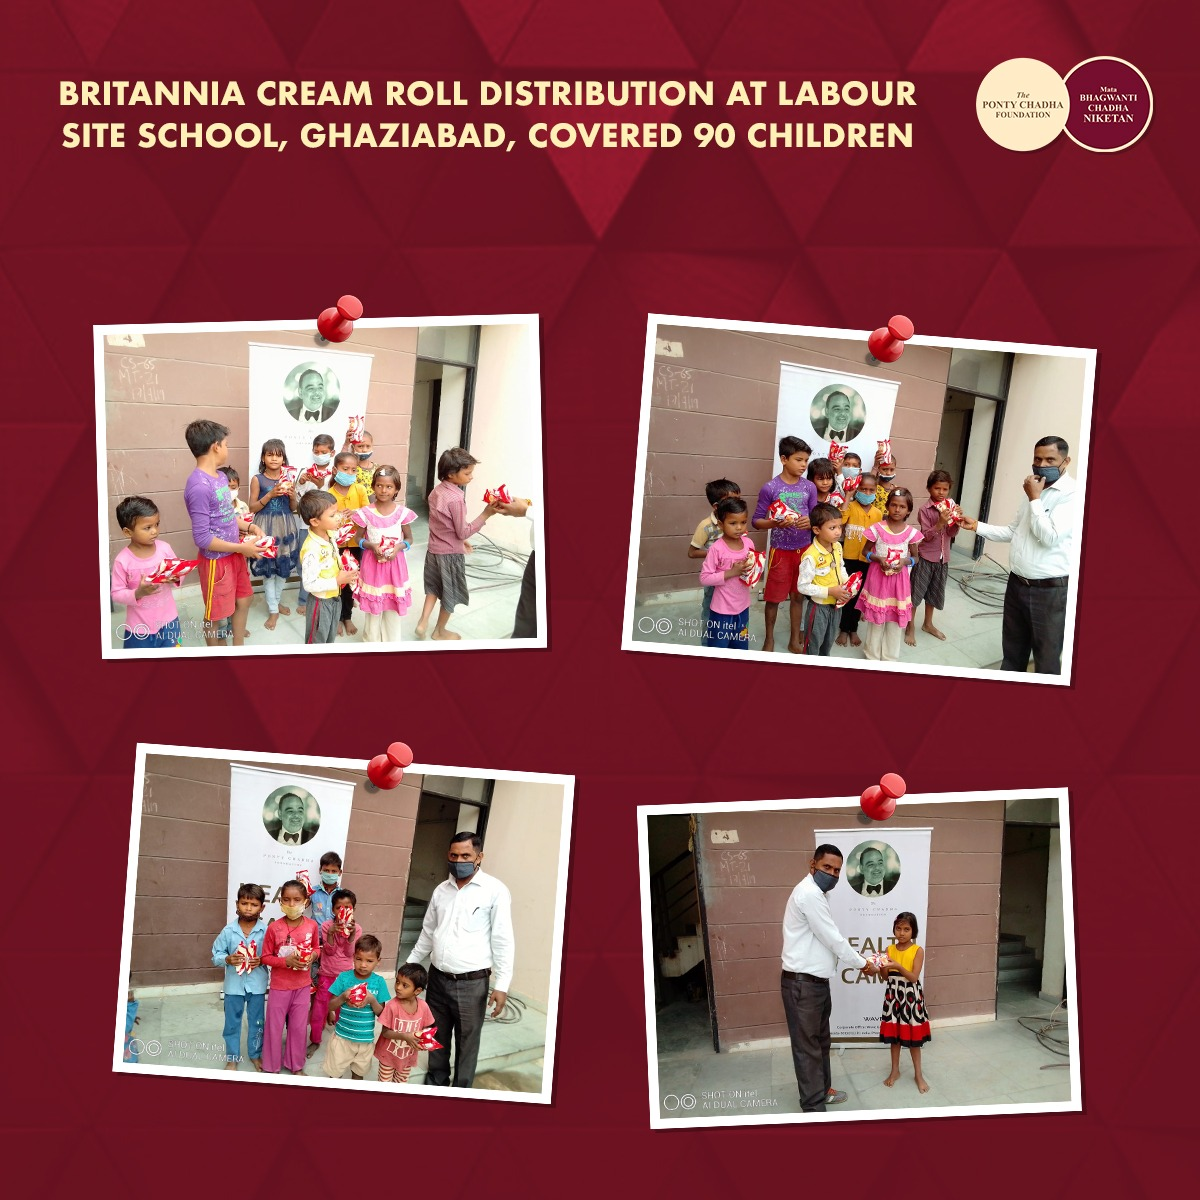 #spreadsmiles One of the best things in life is to be a cause of someone's smile. As a token of care, we distributed Britannia cream roll at labour site school,Ghaziabad on 22nd Oct,covered 90 children #kindnessmatters #happiness #smile #giveothers #givingback  #mondaymotivation https://t.co/m1I6A2UPDj